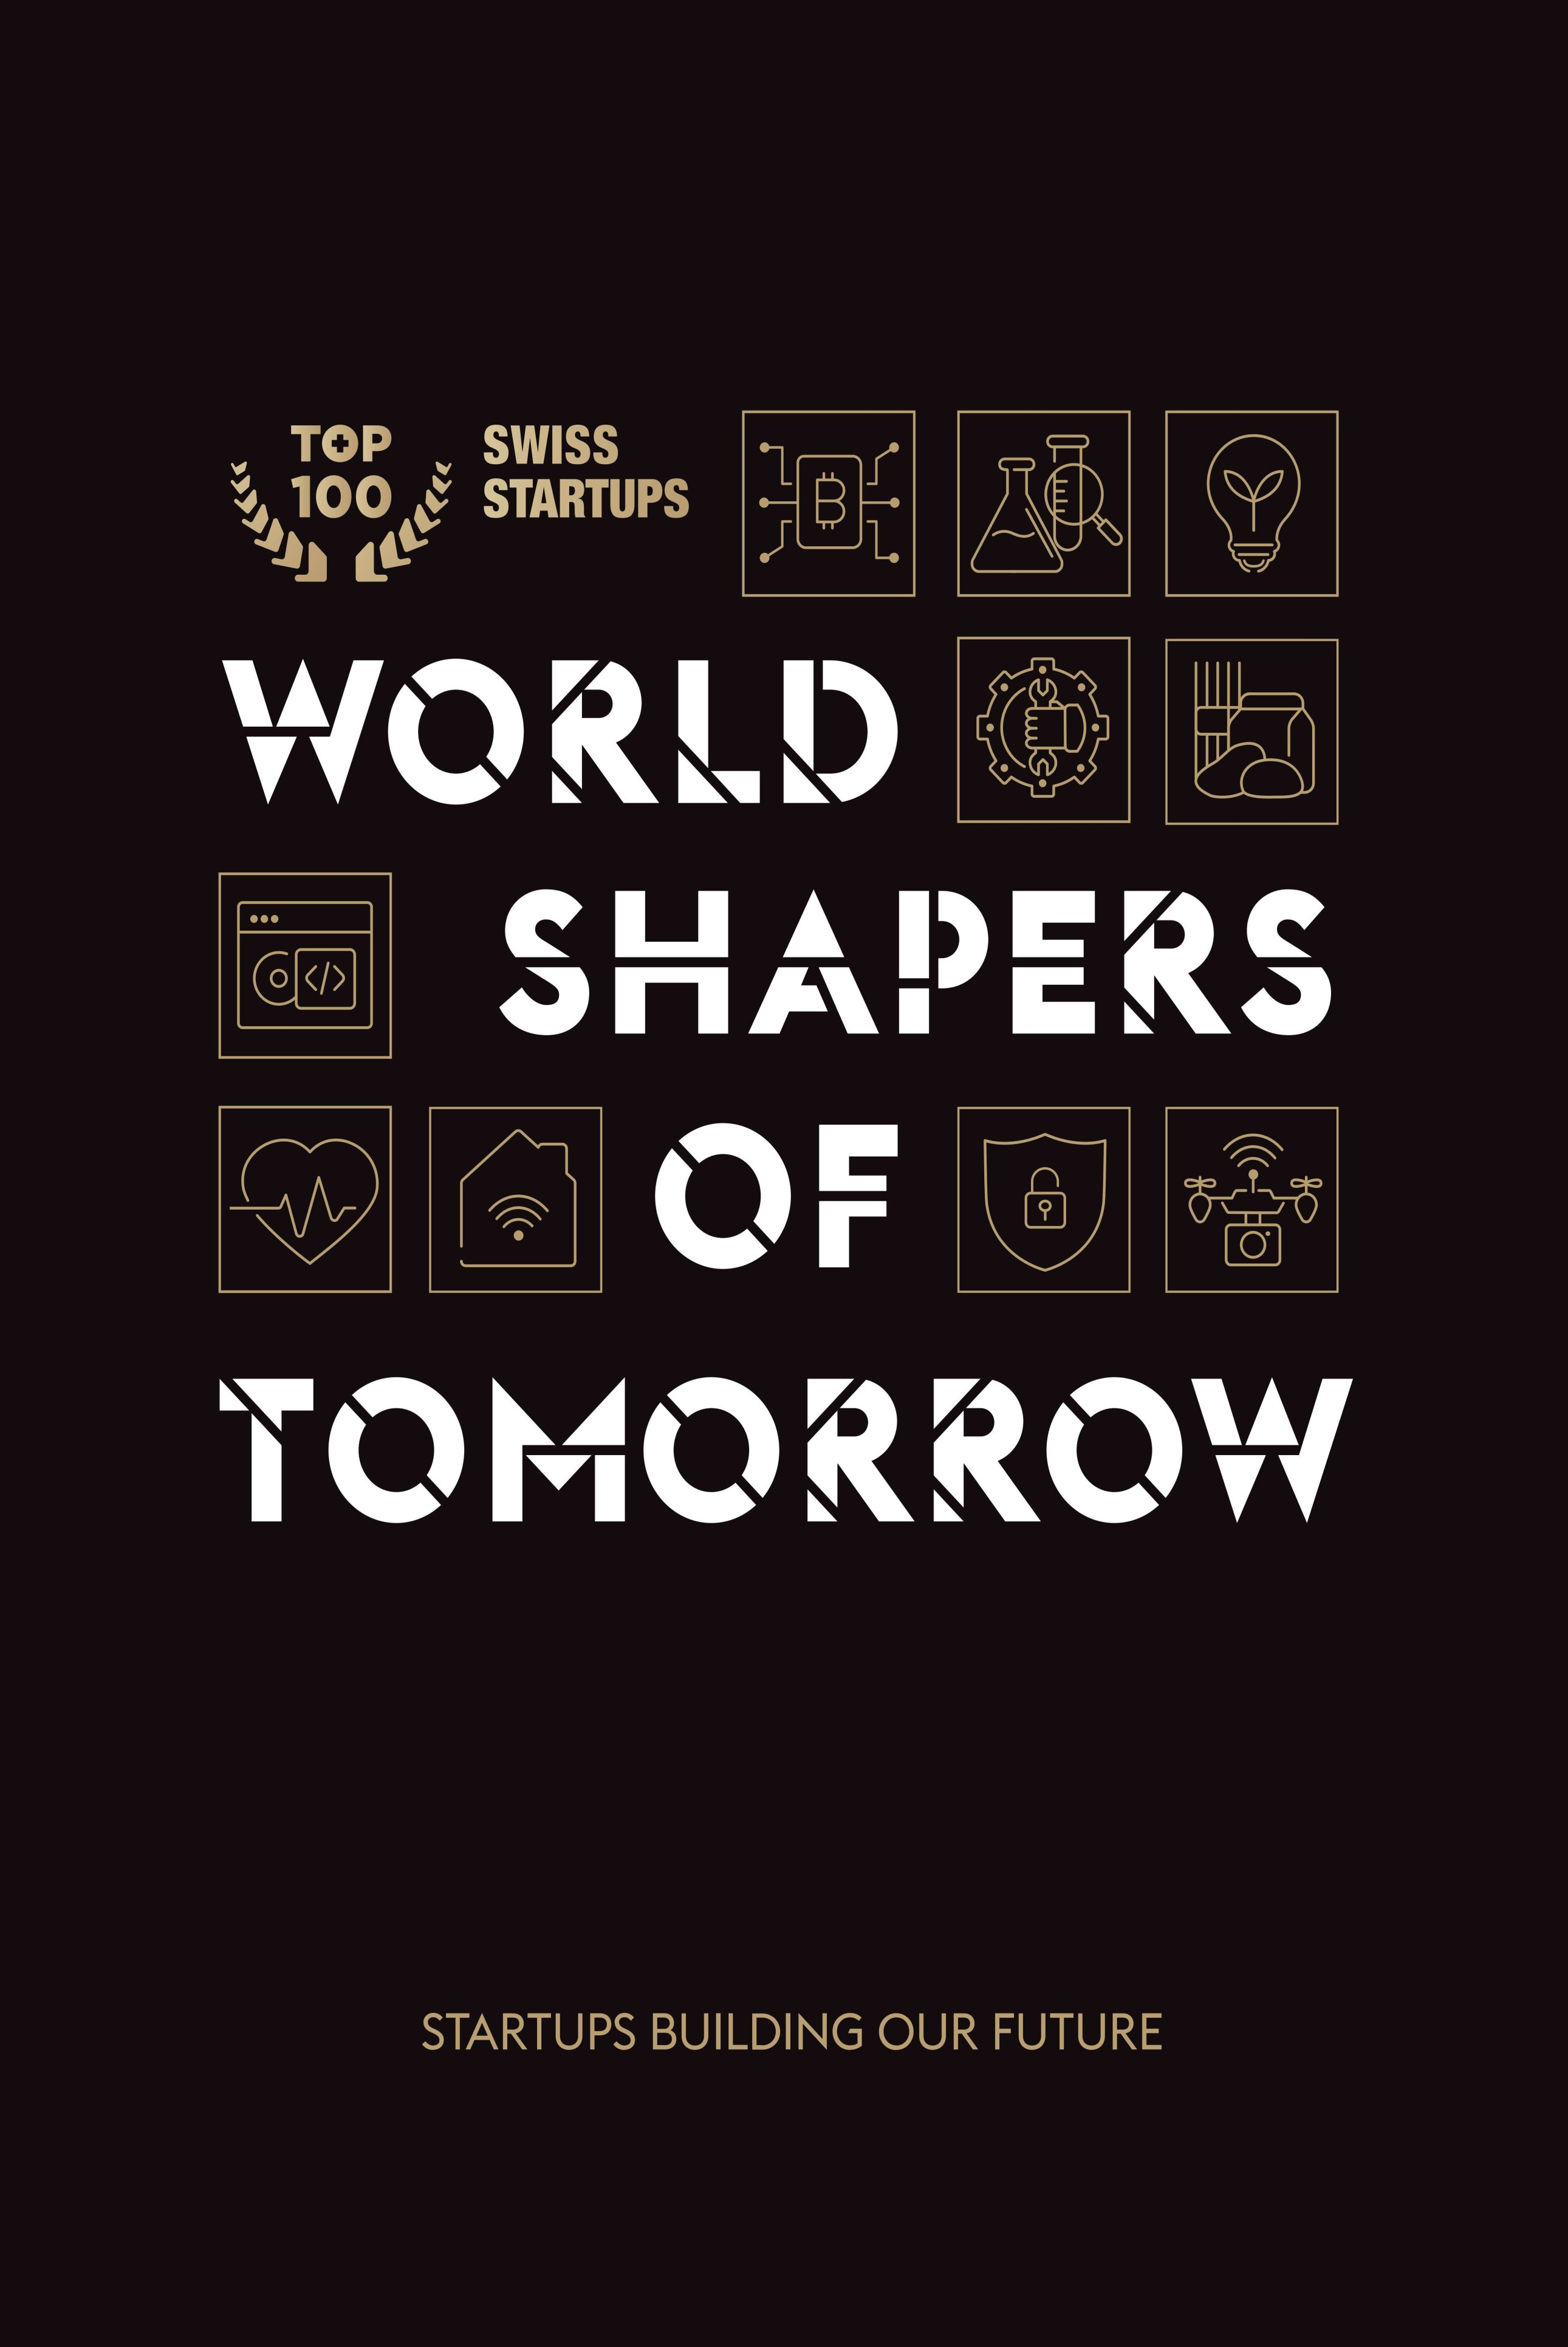 World shapers of tomorrow - Non-fiction book on startups that build the future of Switzerland